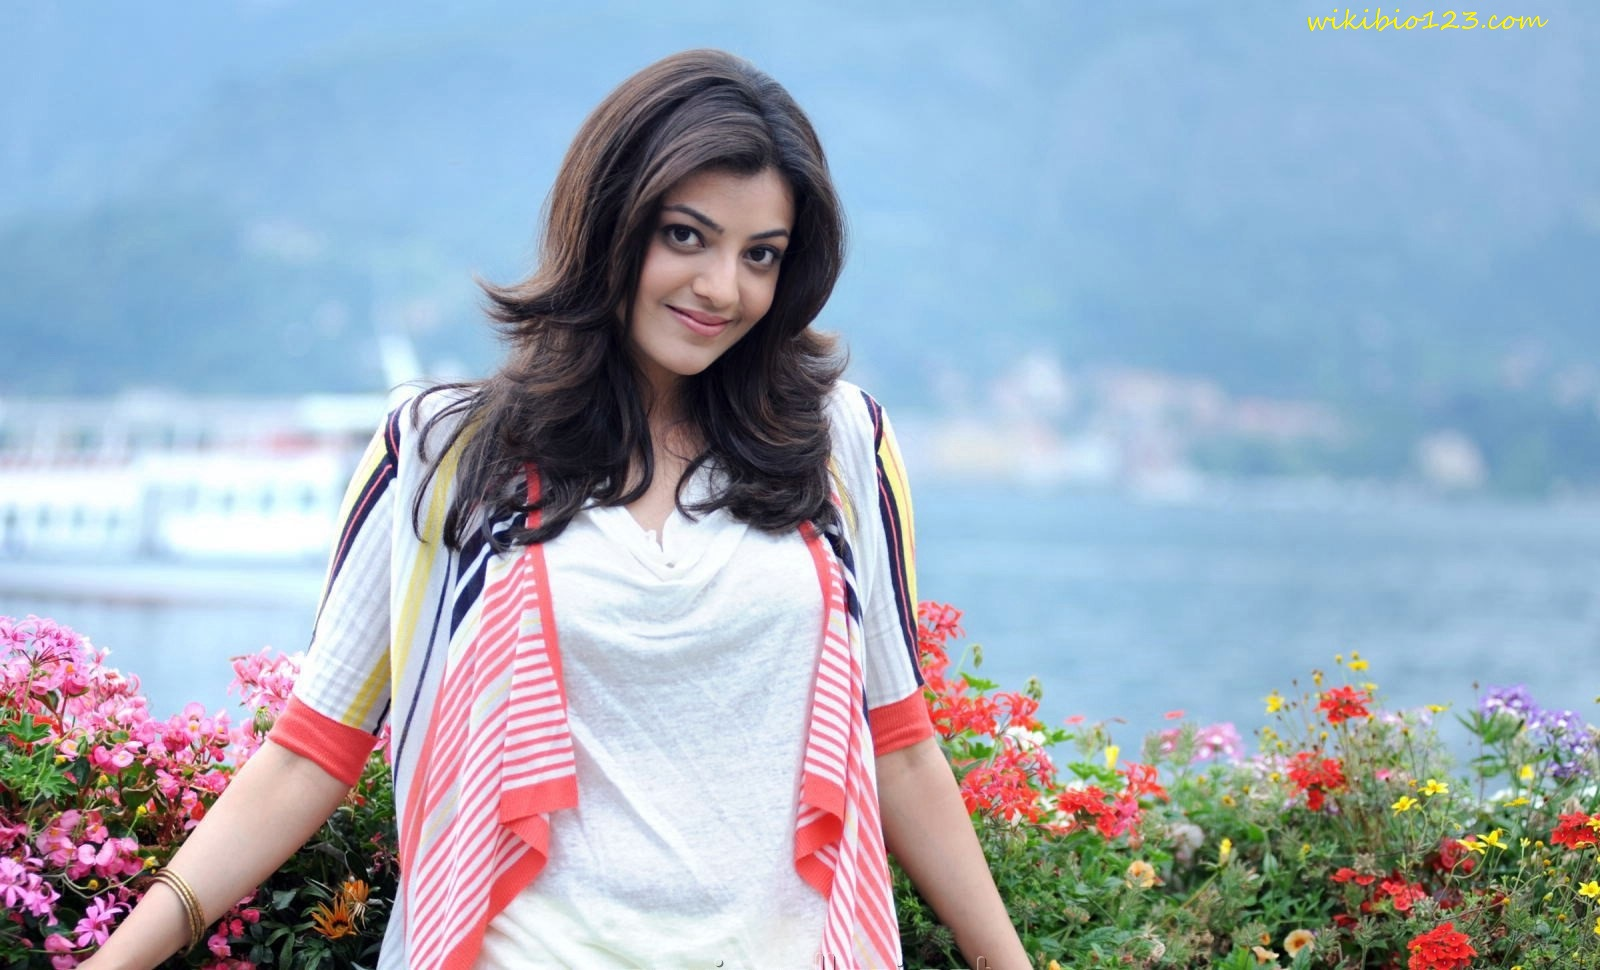 Kajal Aggarwal wiki Bio Age Figure size Height HD Images Wallpapers Download